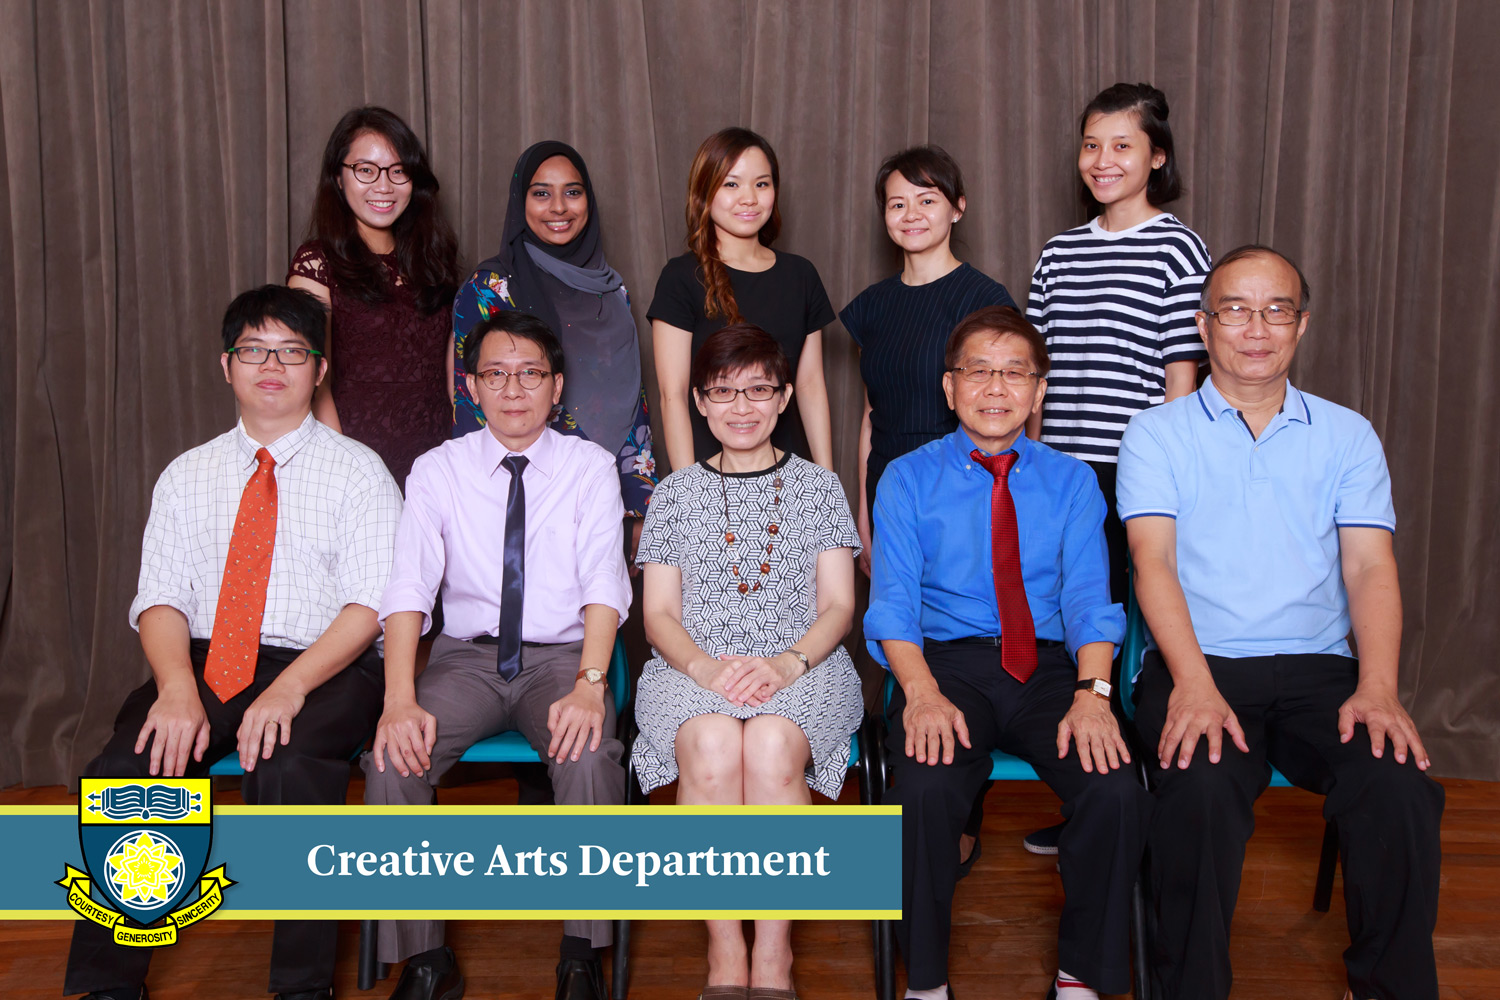 Creative Arts Department